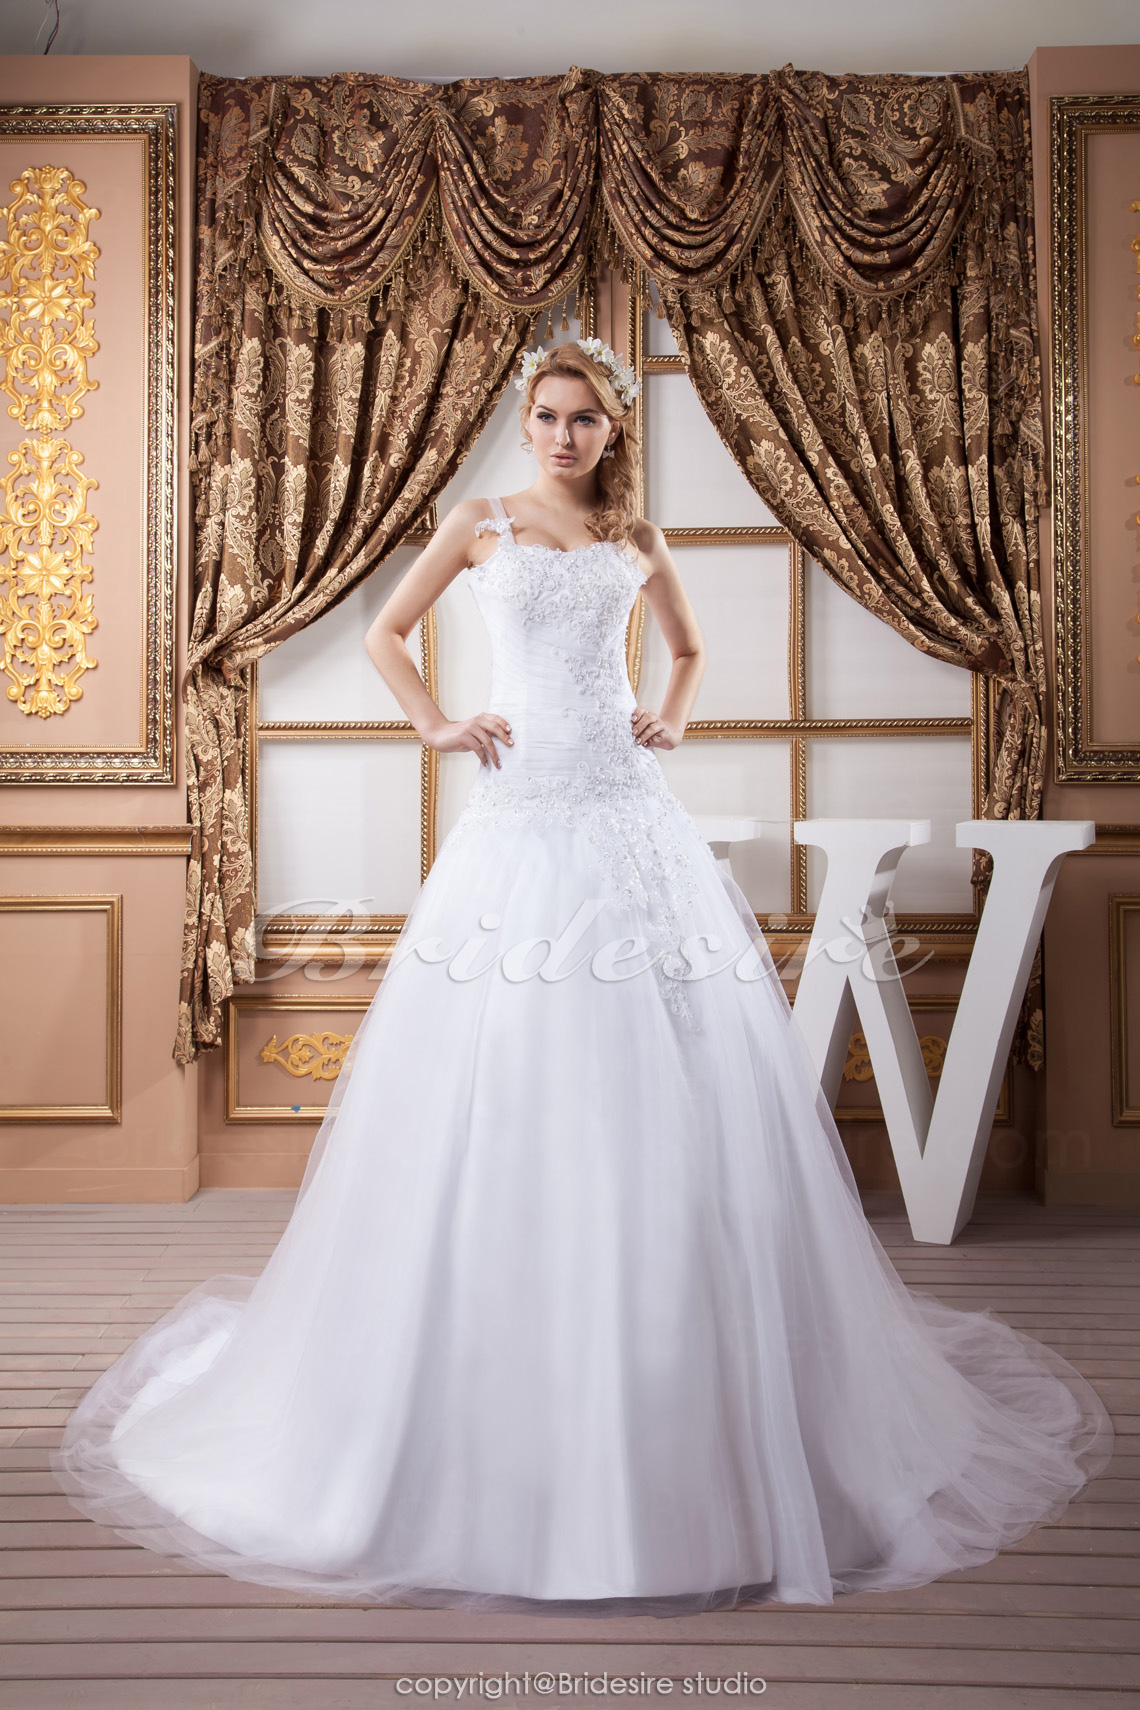 A-line Spaghetti Straps Floor-length Sweep Train Sleeveless Satin Lace Wedding Dress